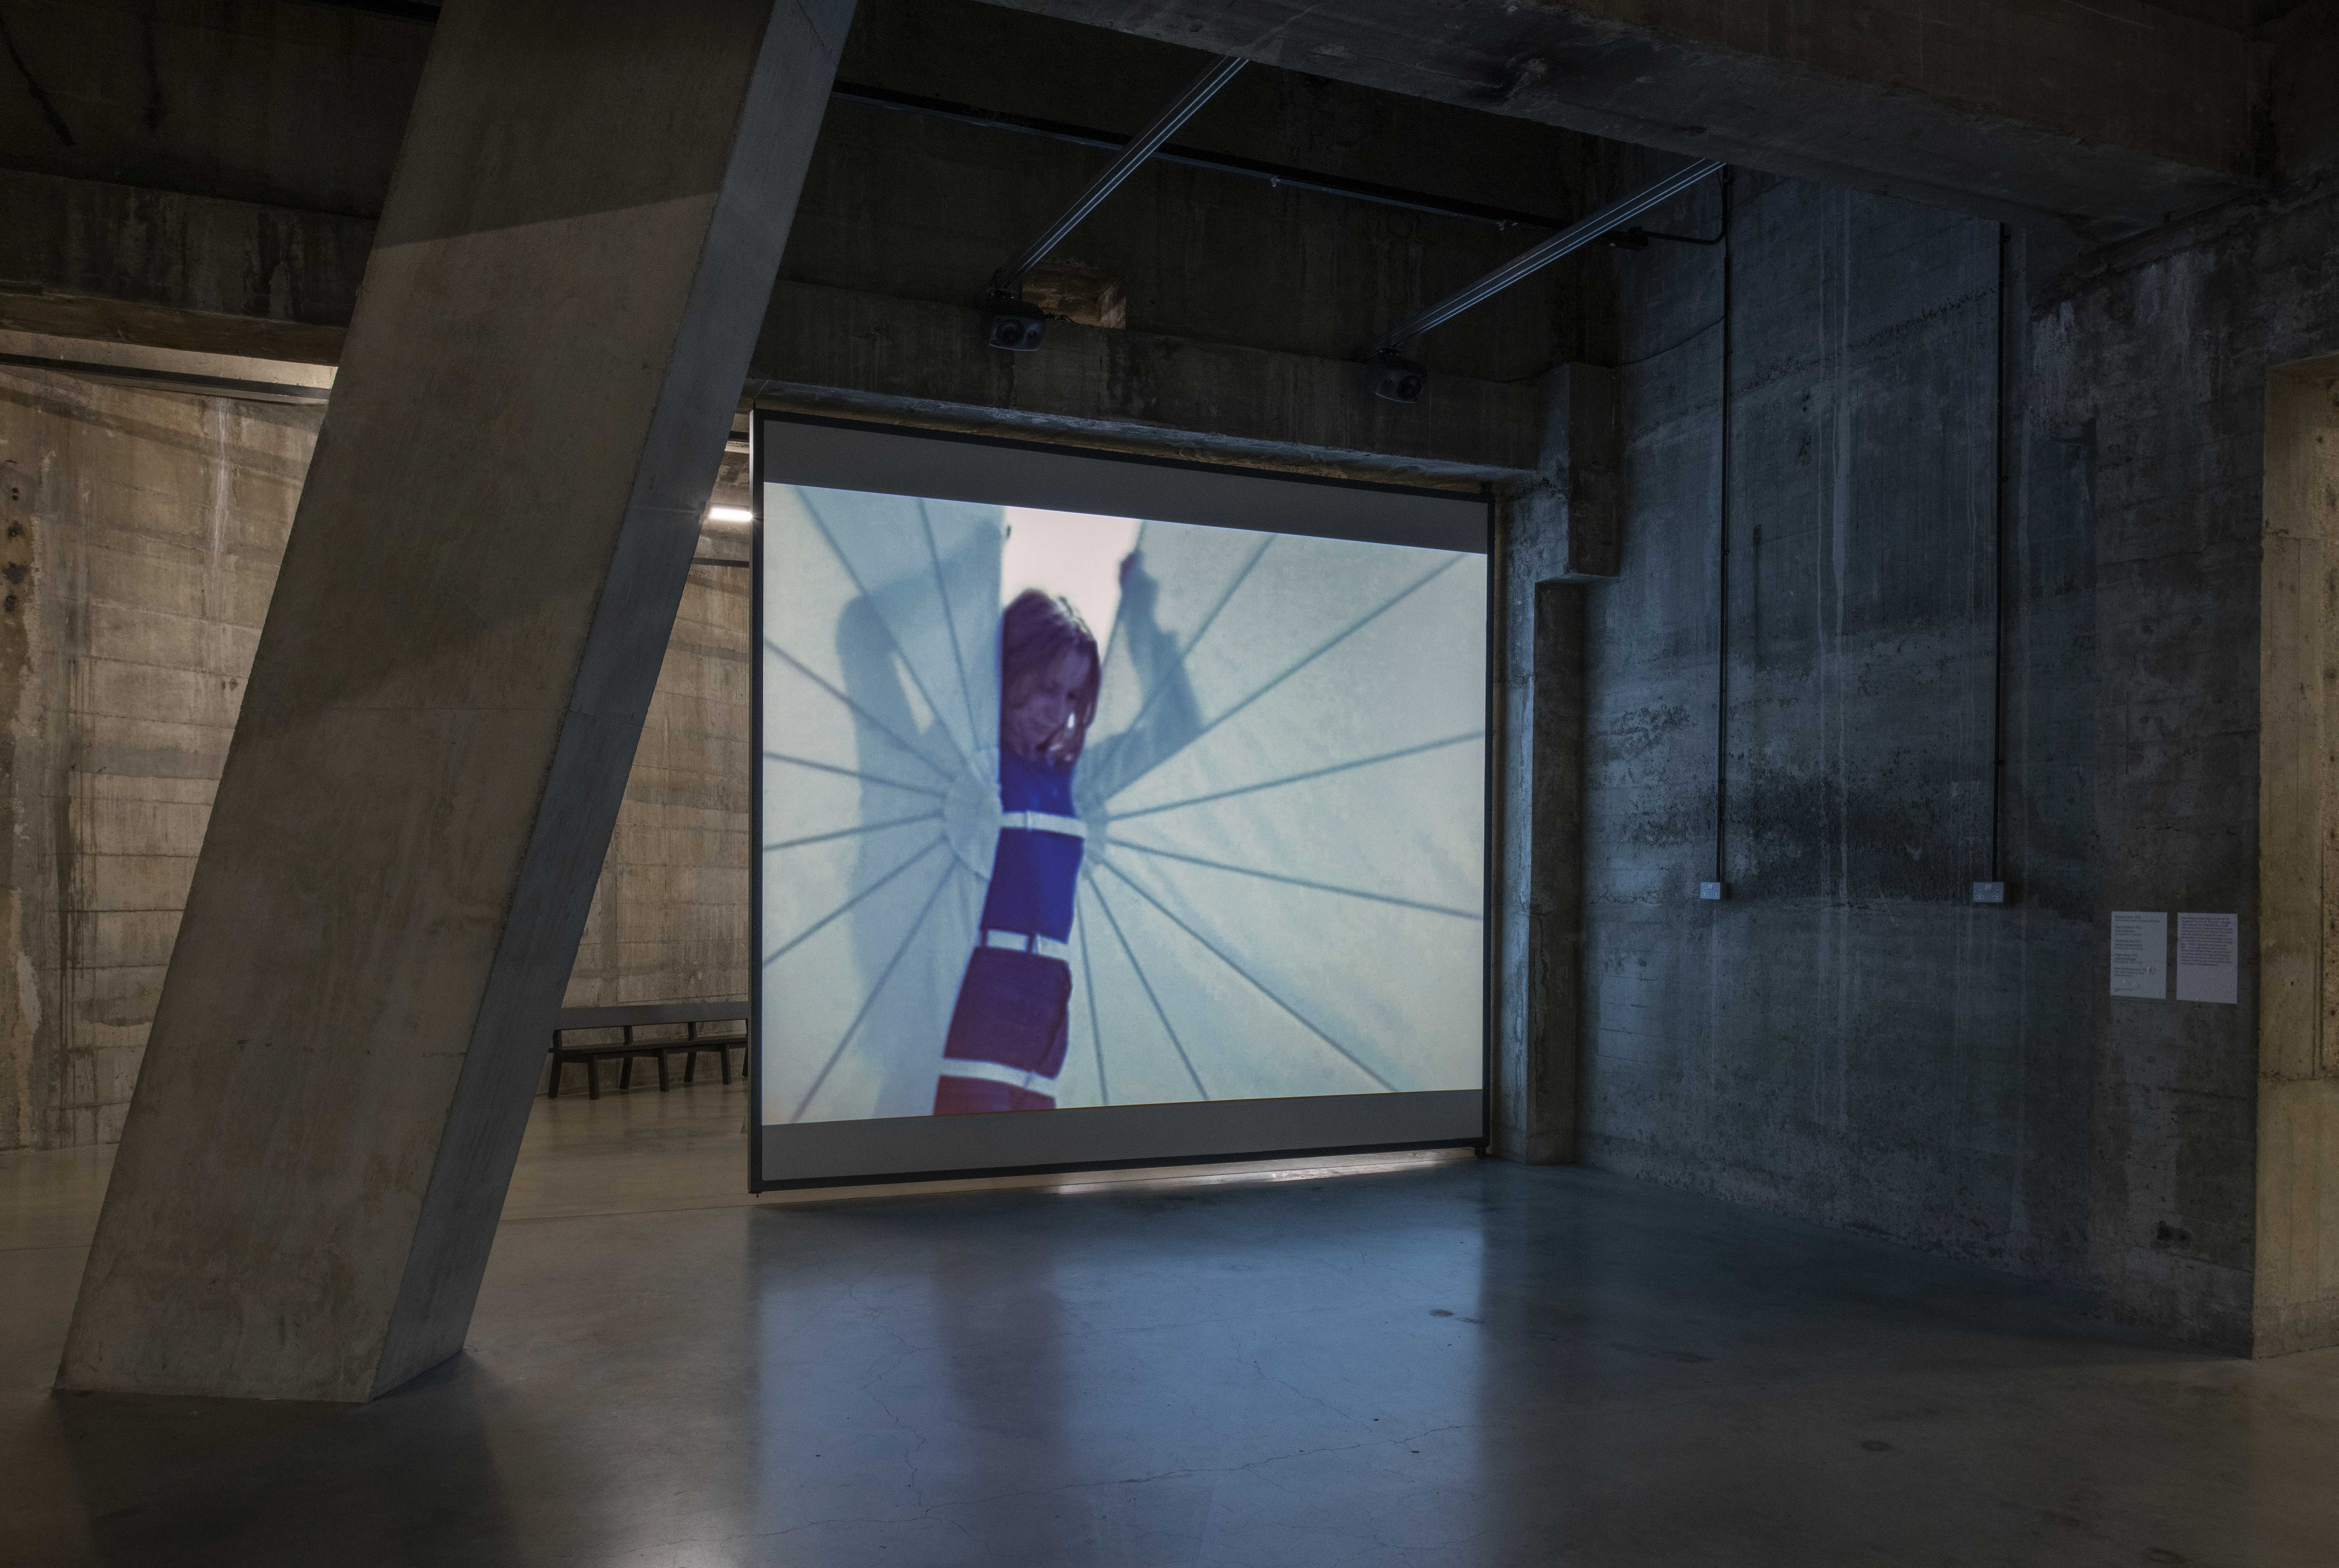 Rebecca Horn's installation and video work at the Tate Modern| Finger Gloves| Rebecca Horn| Tate Modern| STIR